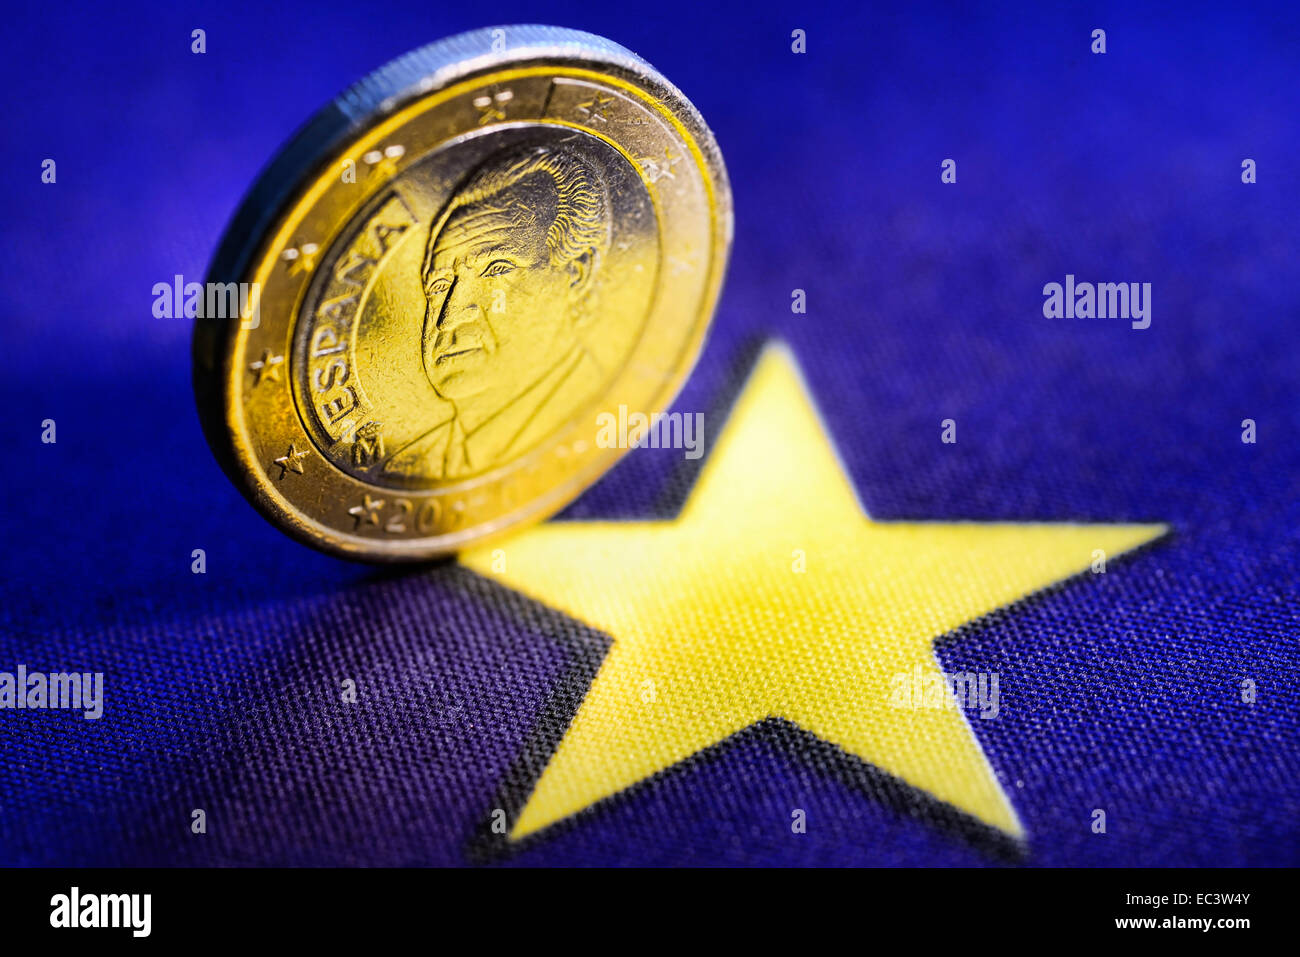 One euro coin of Spain, Spanish debt crisis - Stock Image